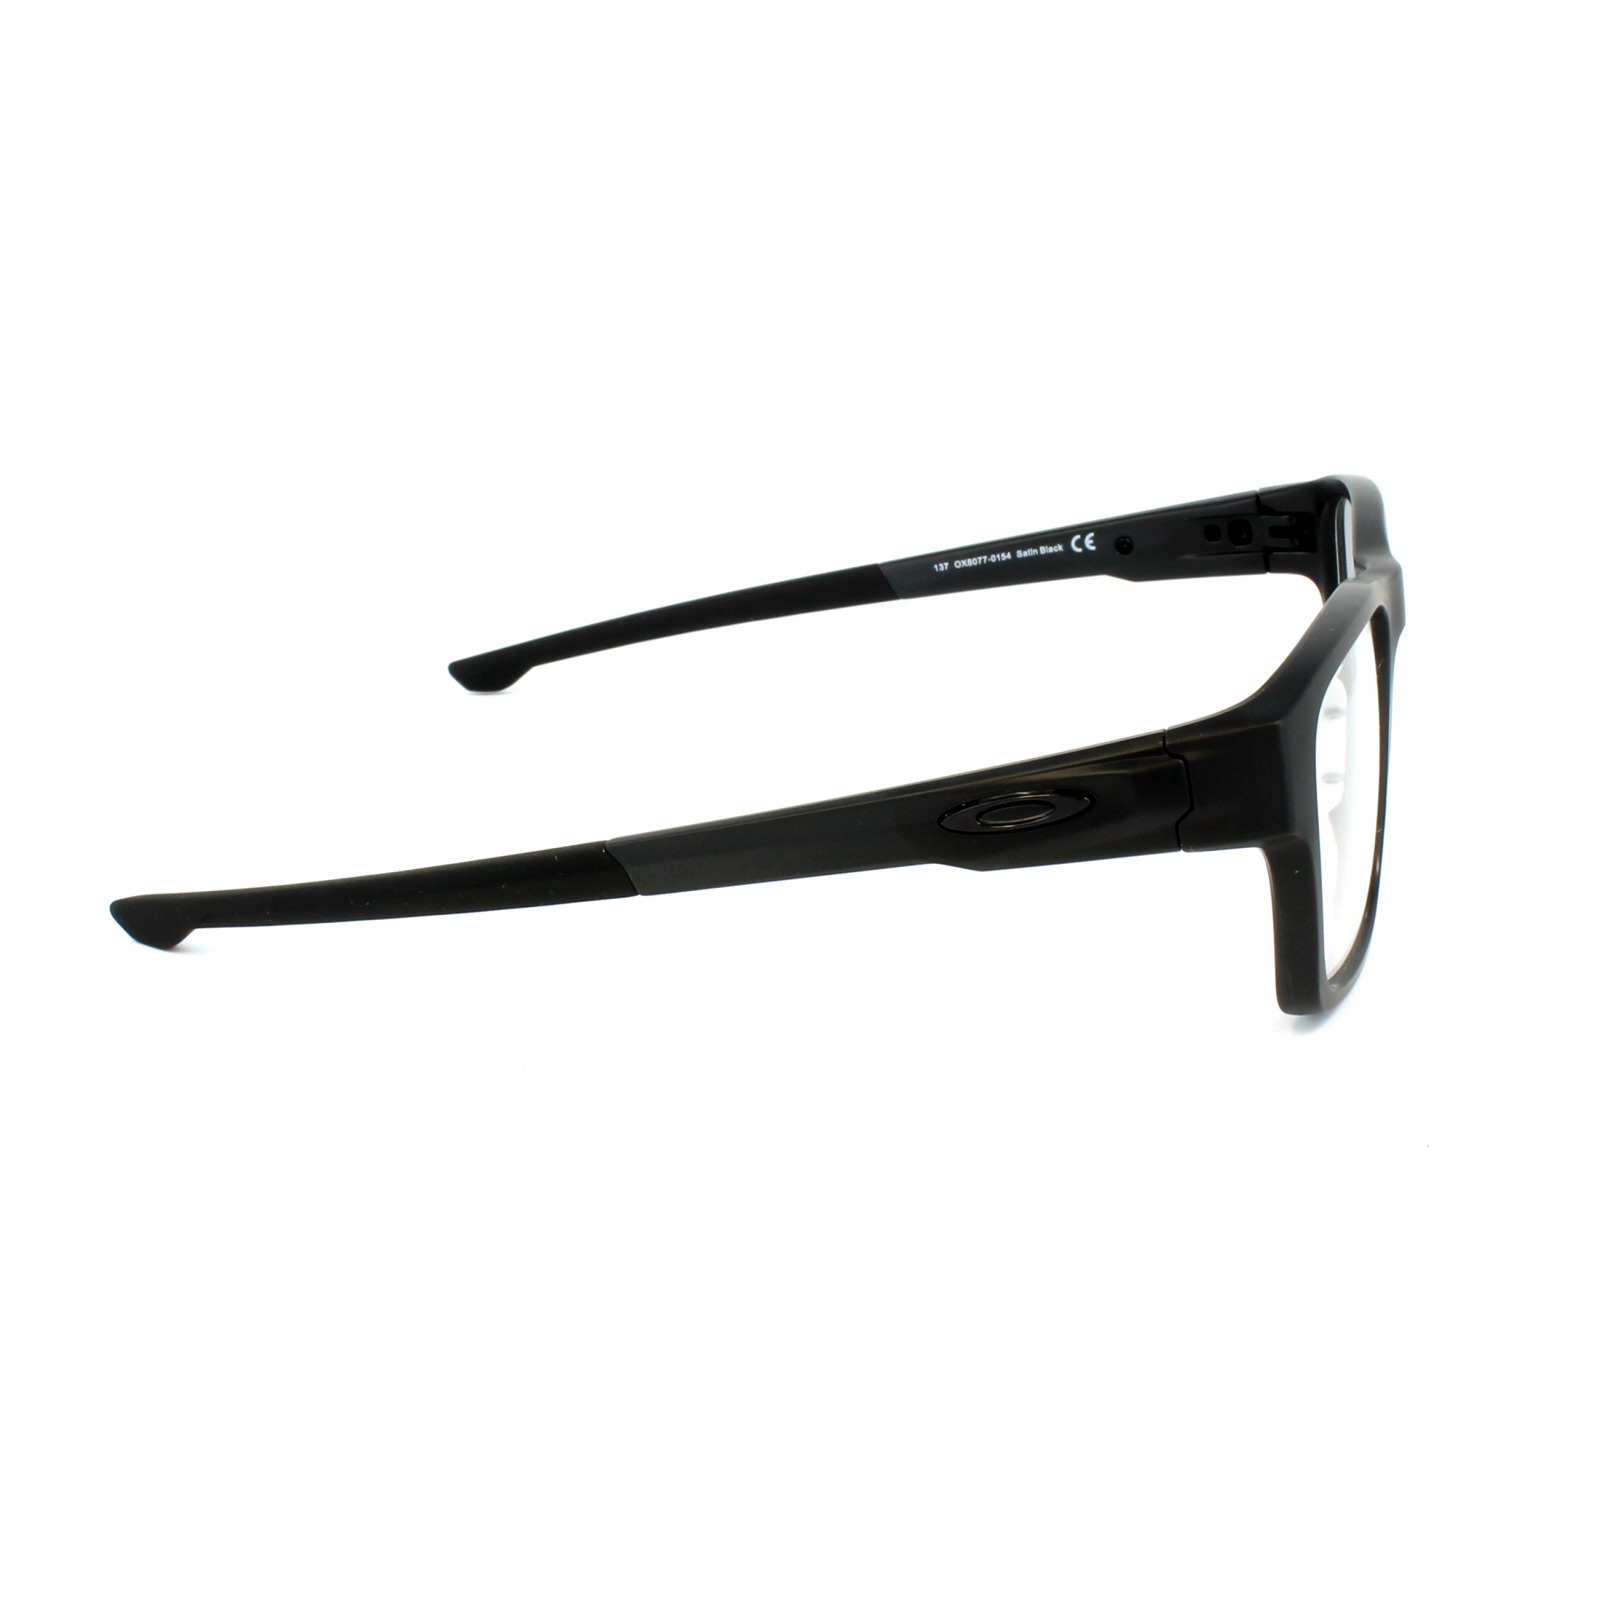 oakley splinter  Oakley Glasses Frames Splinter OX8077-01 Satin Black